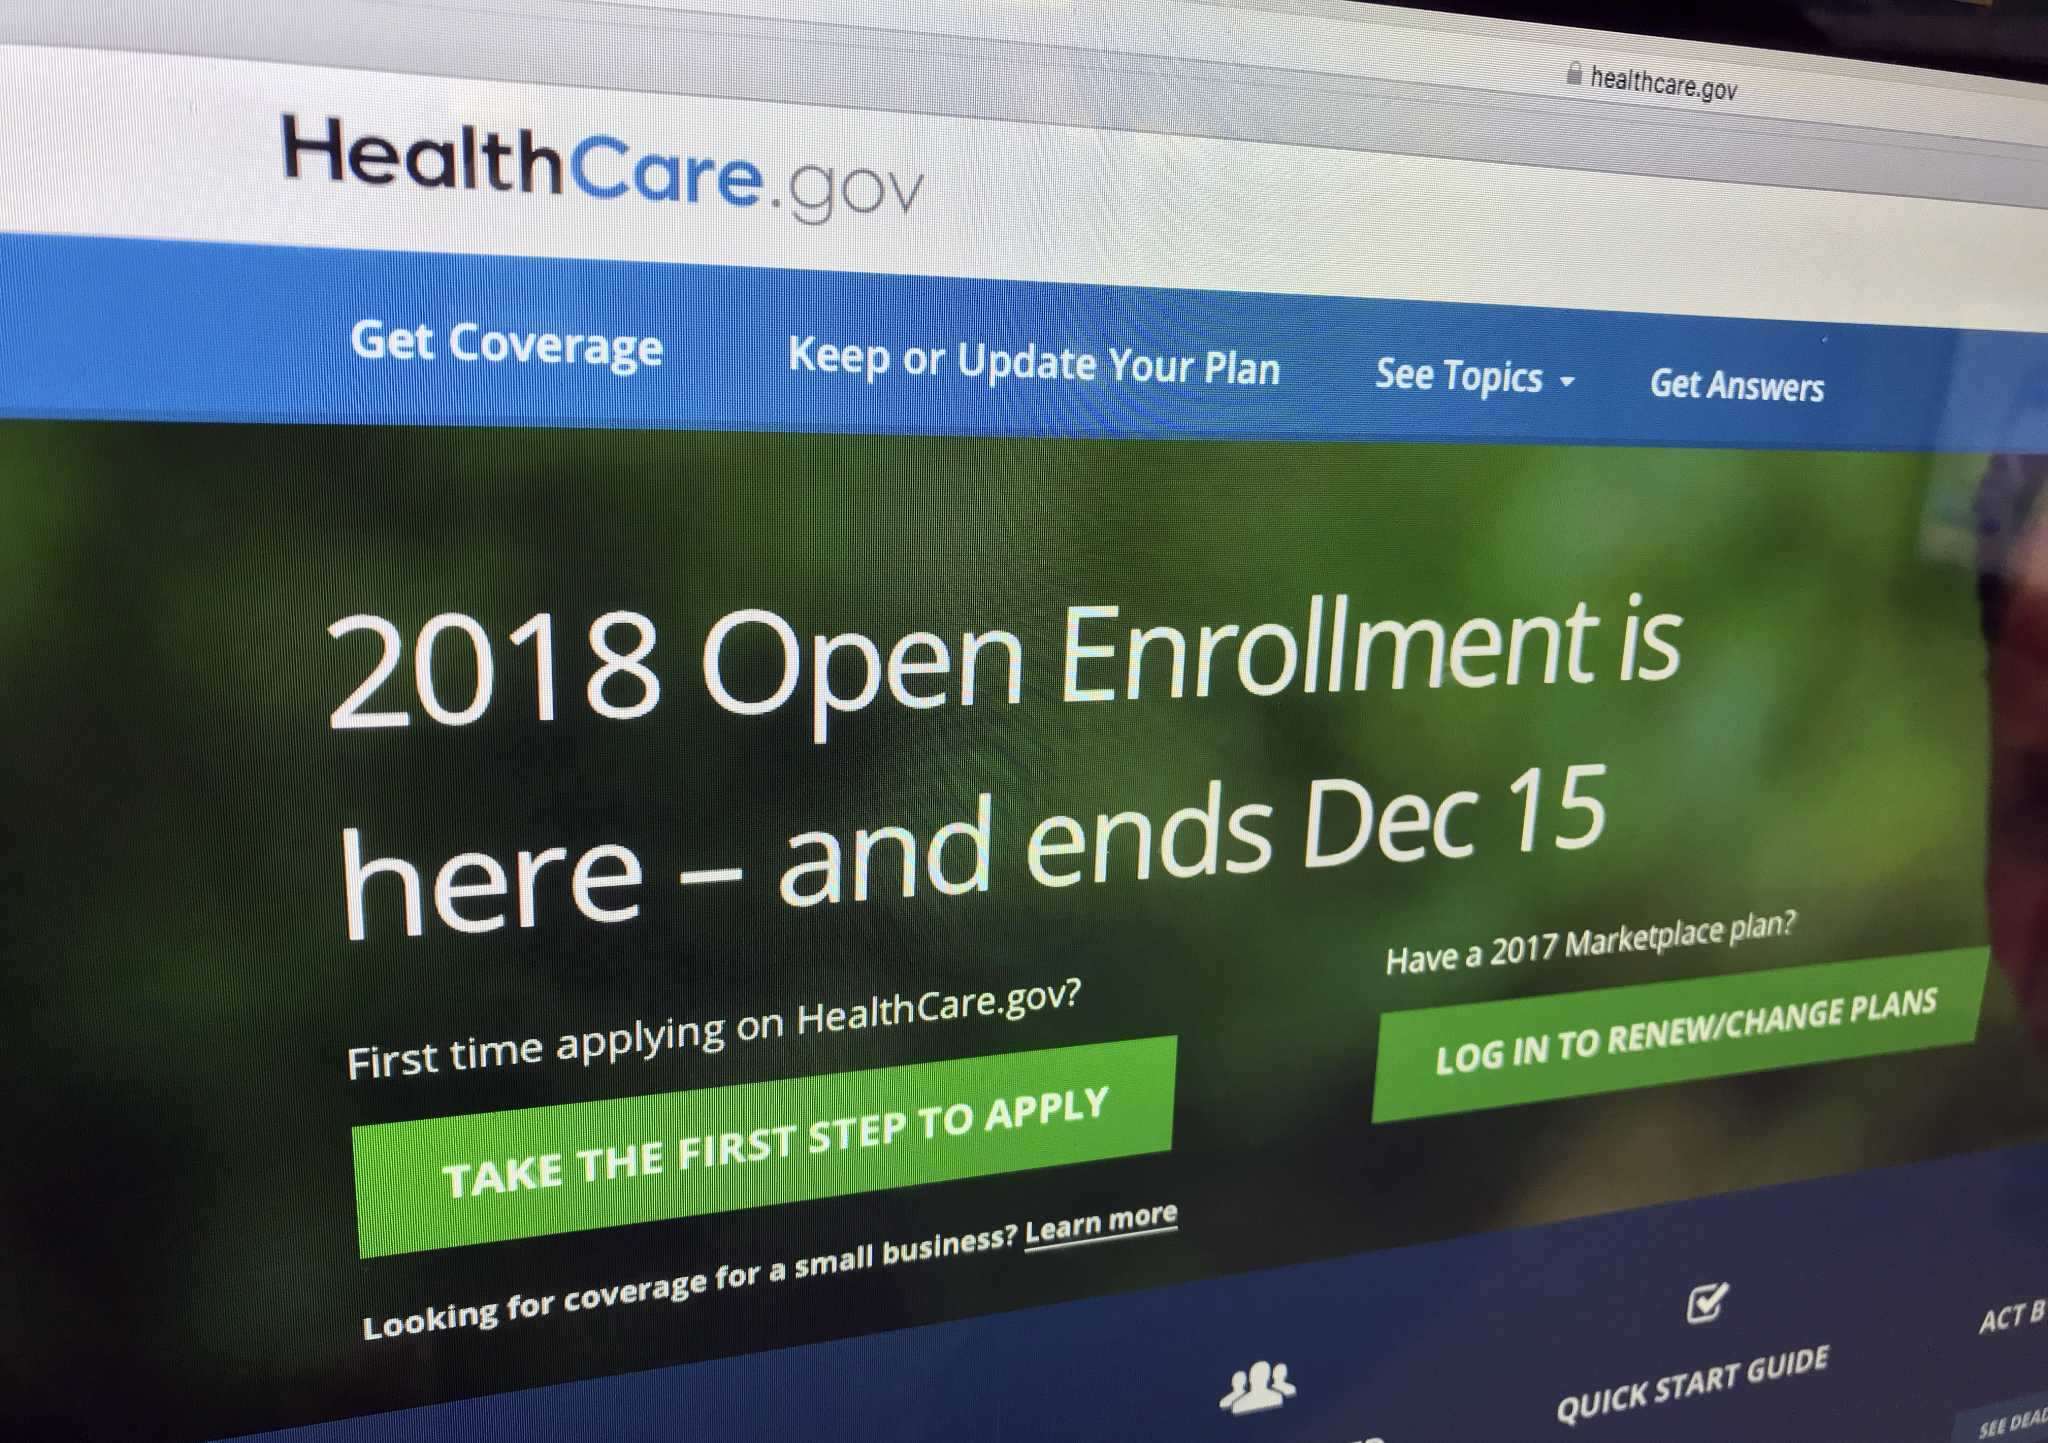 Texans overcharged $92 million by health insurers last year